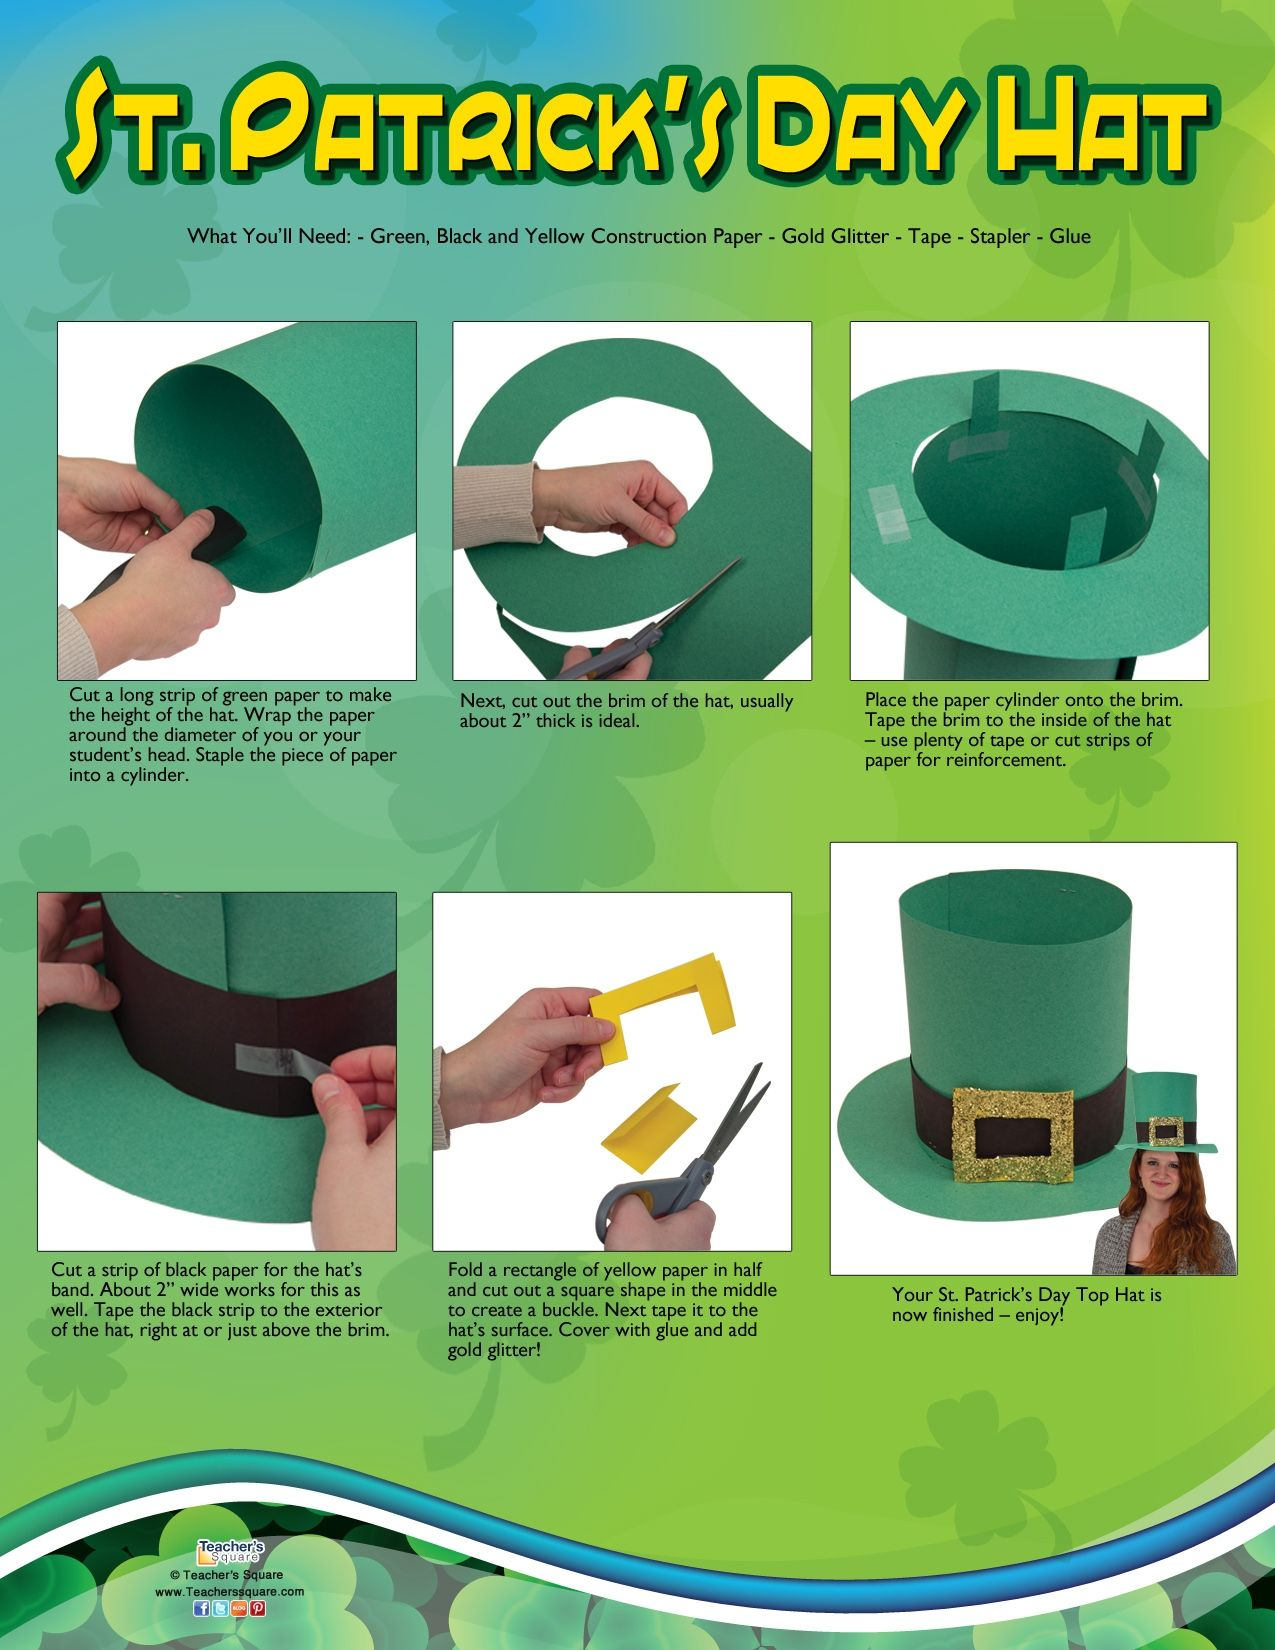 St patricks crafts for preschoolers - Just Your Luck We Have A St Patrick S Day Hat Craft For You And